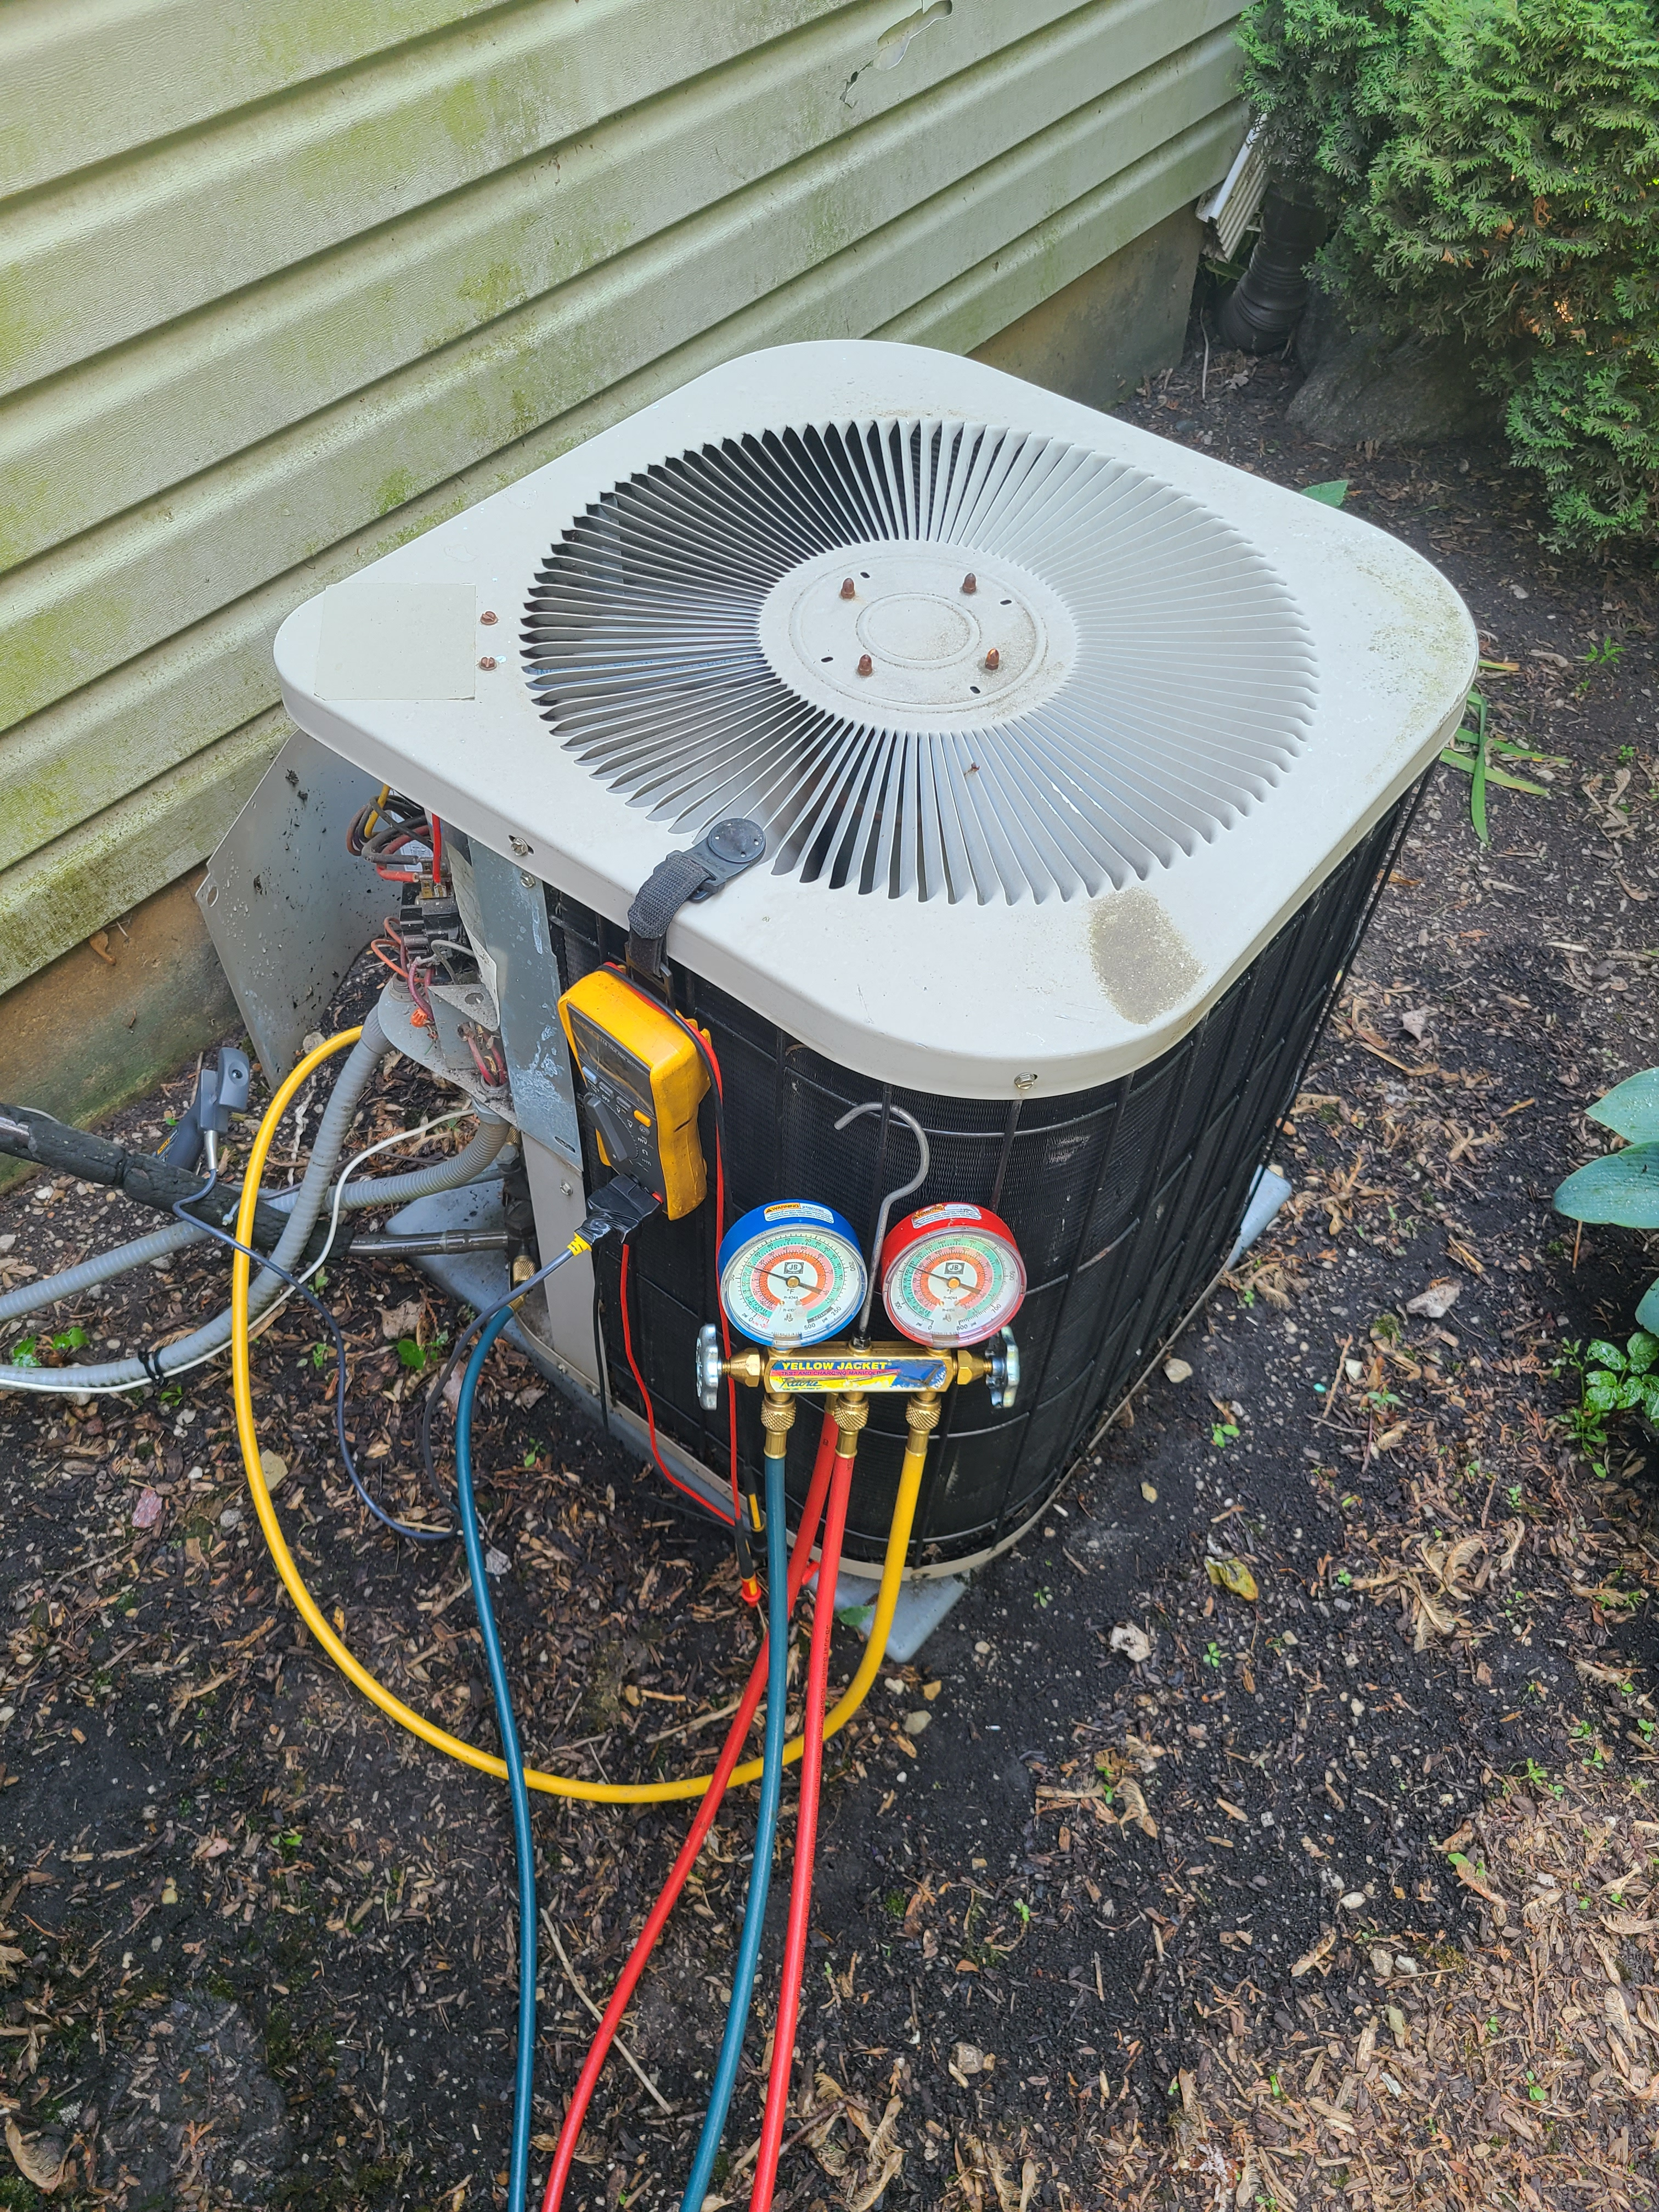 Janitrol ac maintenance and repair. System cleaned and checked and ready for summer.